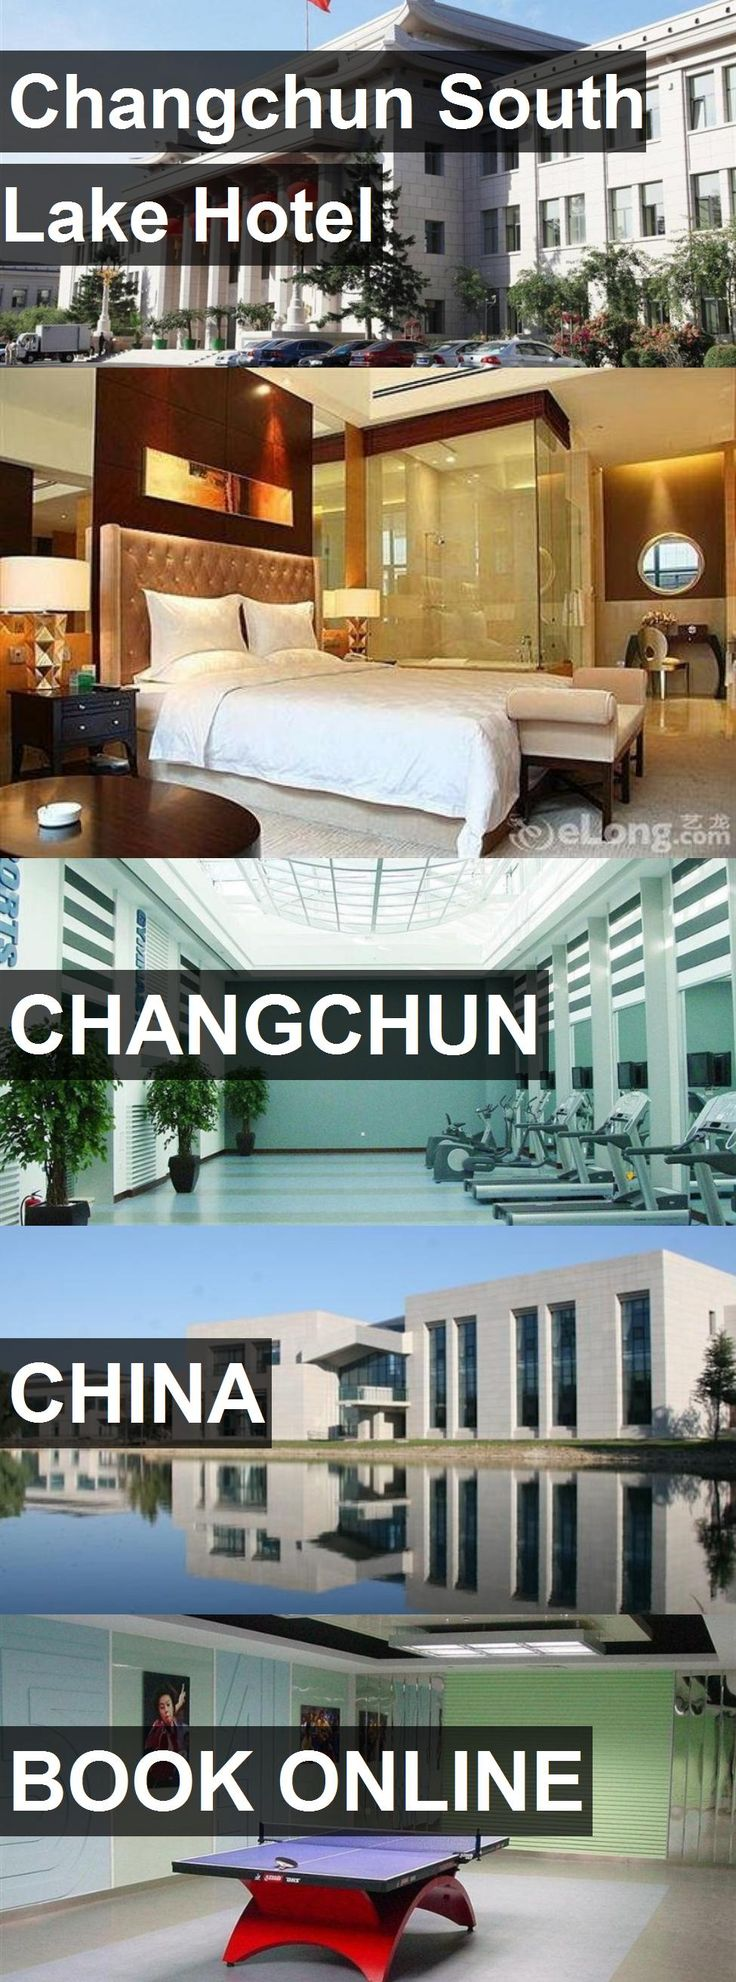 Changchun South Lake Hotel in Changchun, China. For more information, photos, reviews and best prices please follow the link. #China #Changchun #travel #vacation #hotel